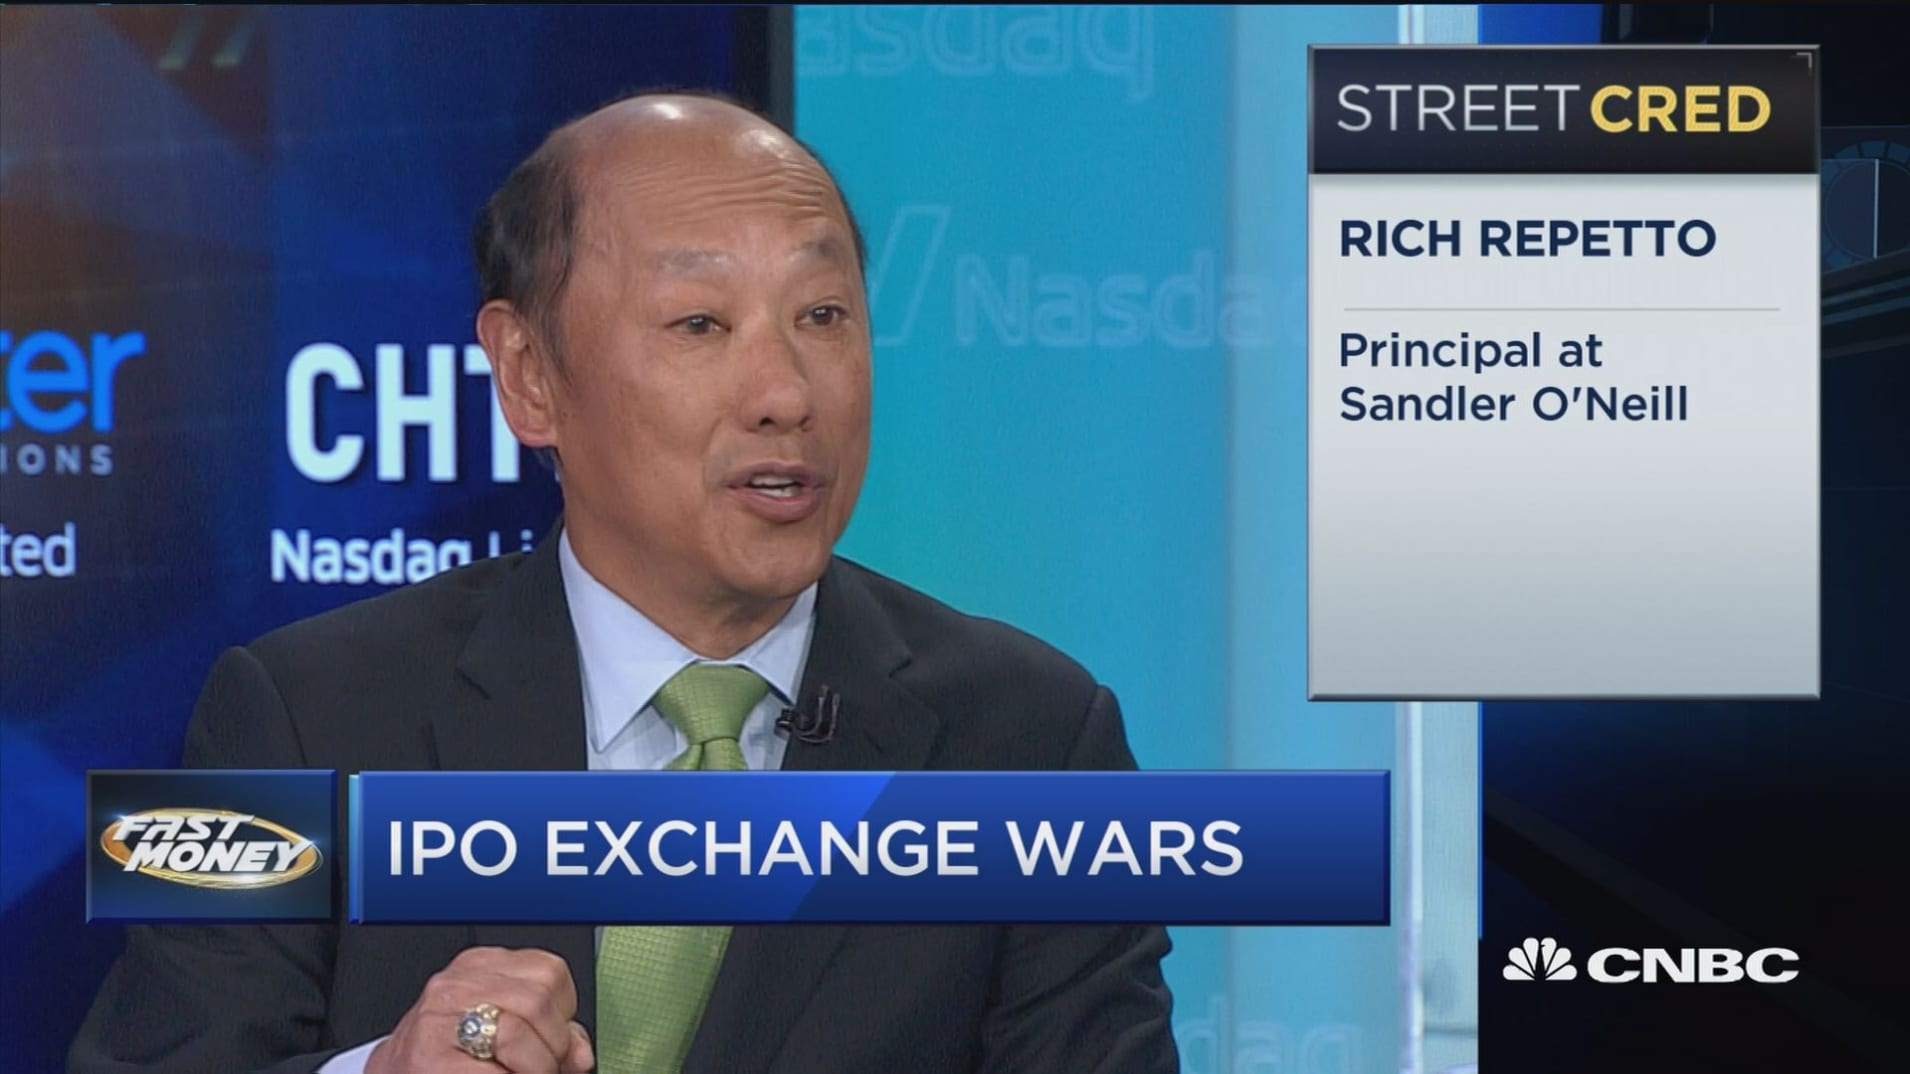 Top analyst Rich Repetto says these are the real winners of the IPO boom